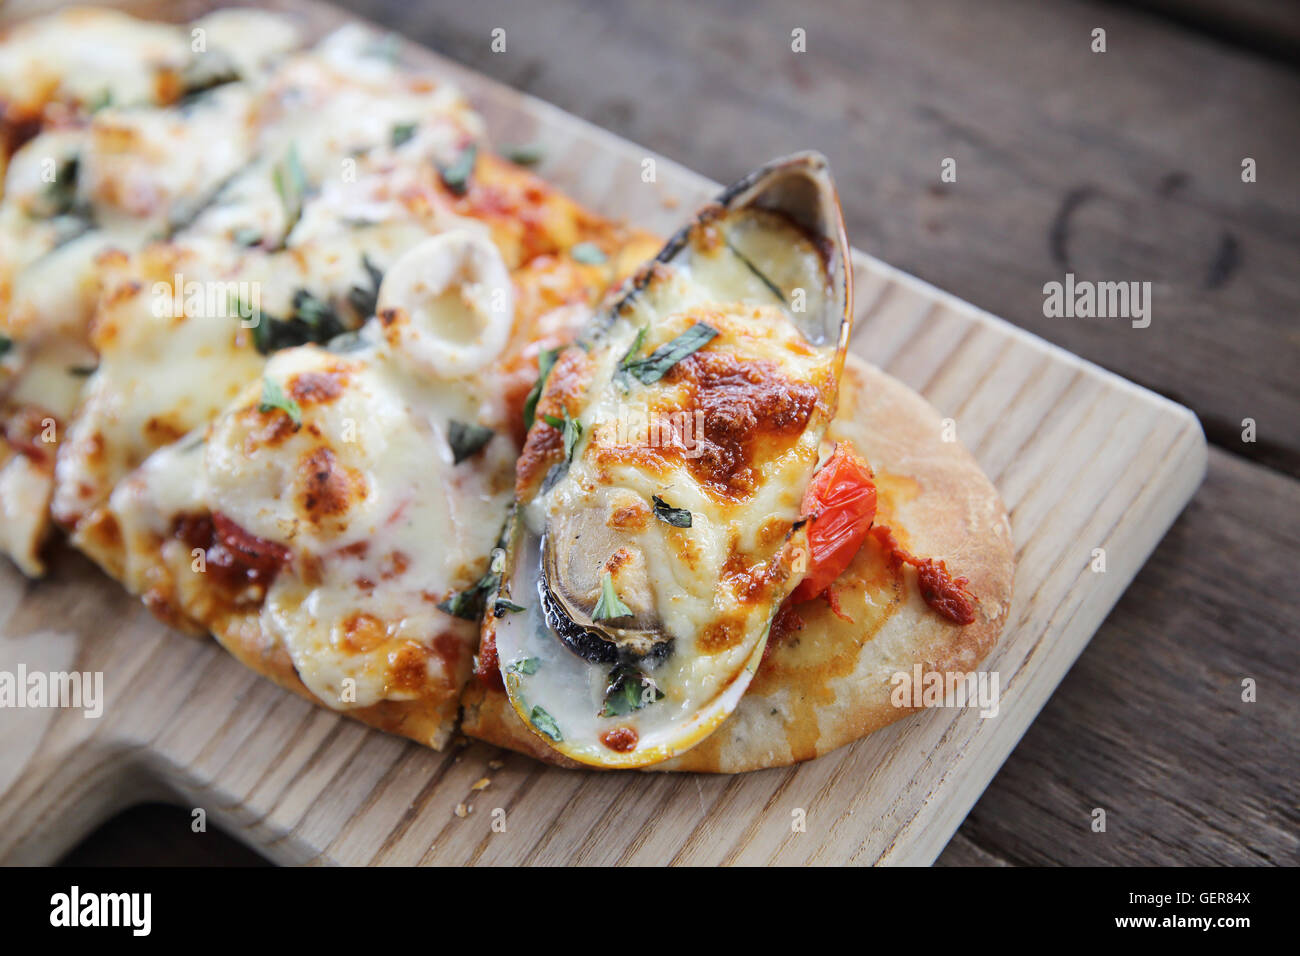 Pizza aux fruits de mer sur fond de bois de la nourriture italienne Photo Stock